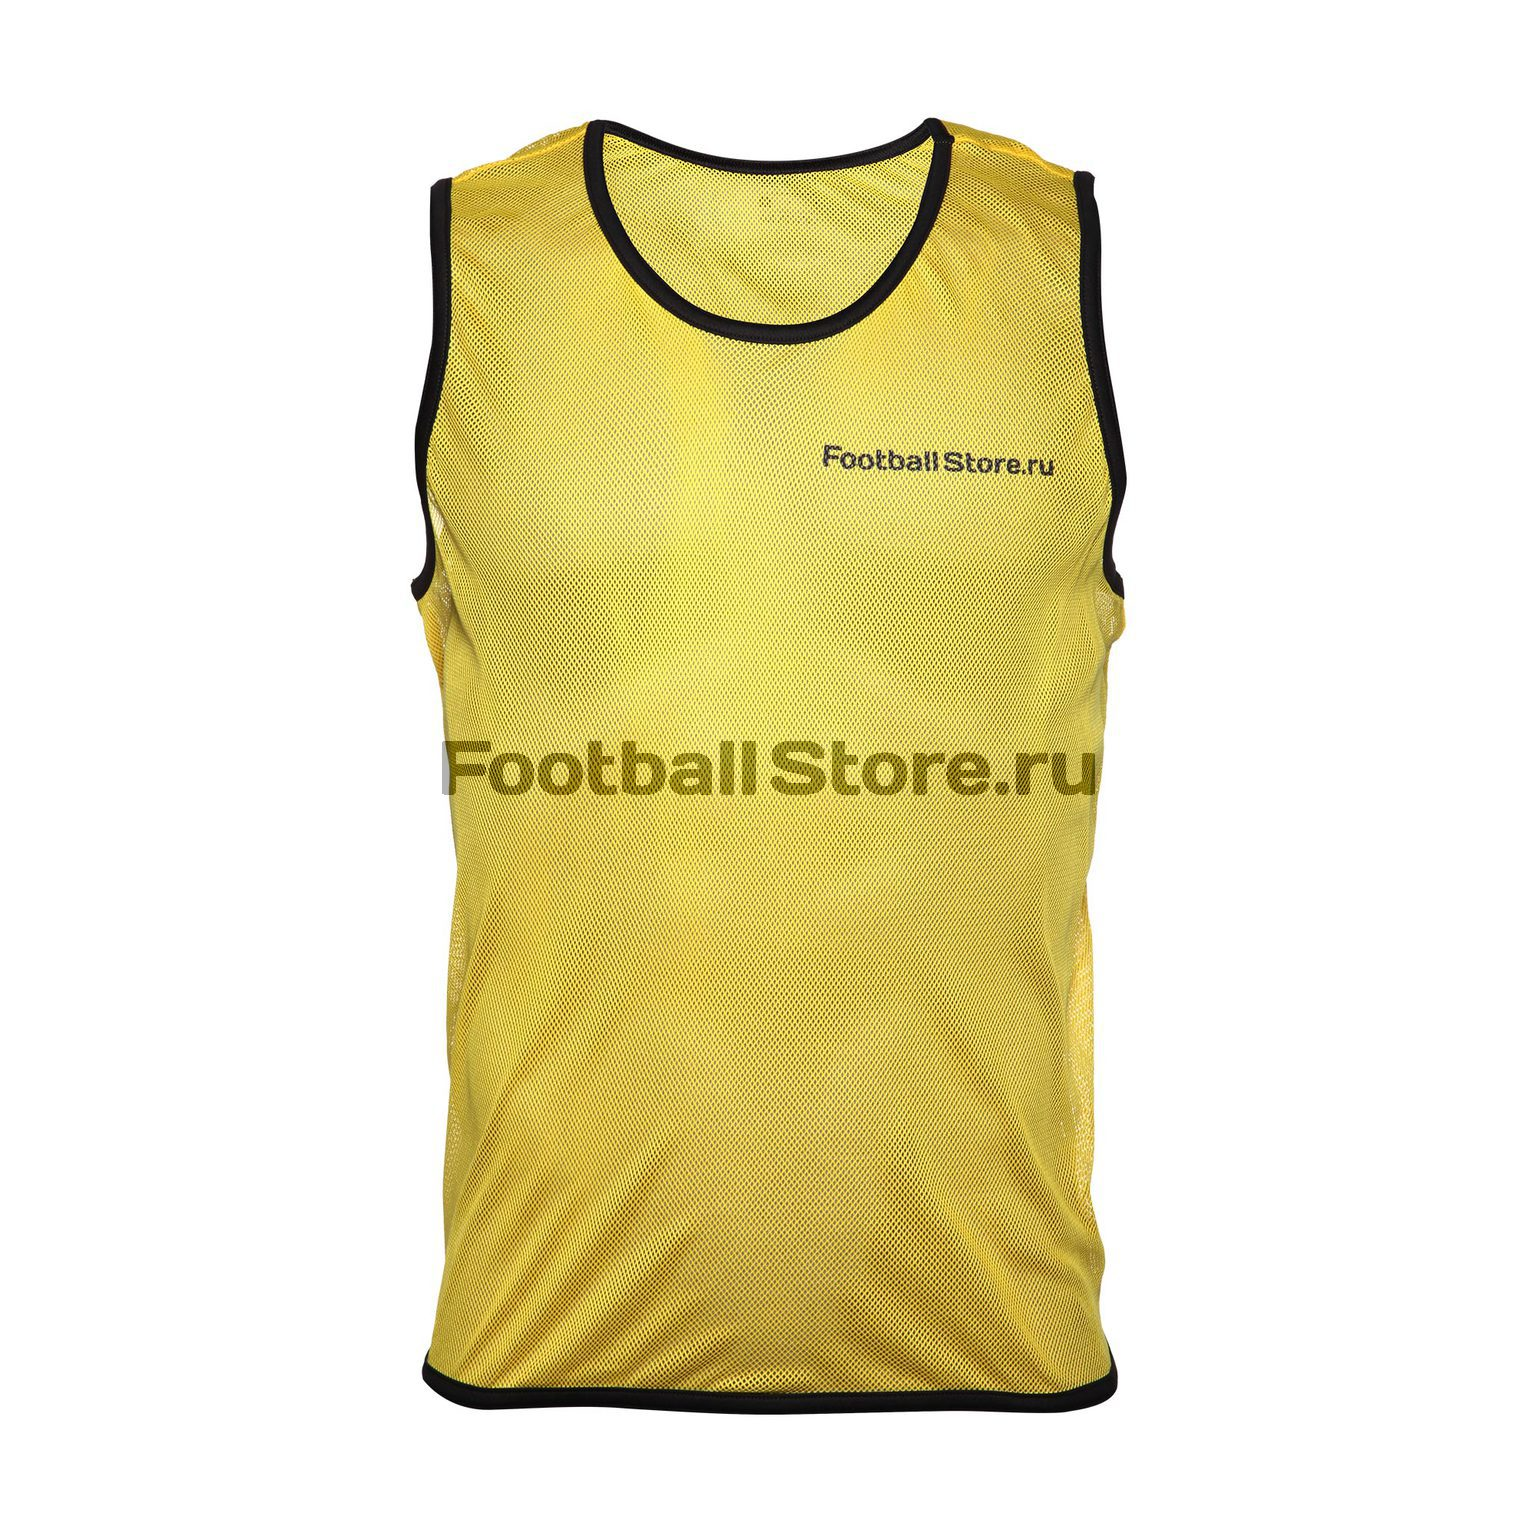 Манишка Footballstore 2K Sport Team 120708-700 500pcs 1210 1 2k 1k2 1 2k ohm 5